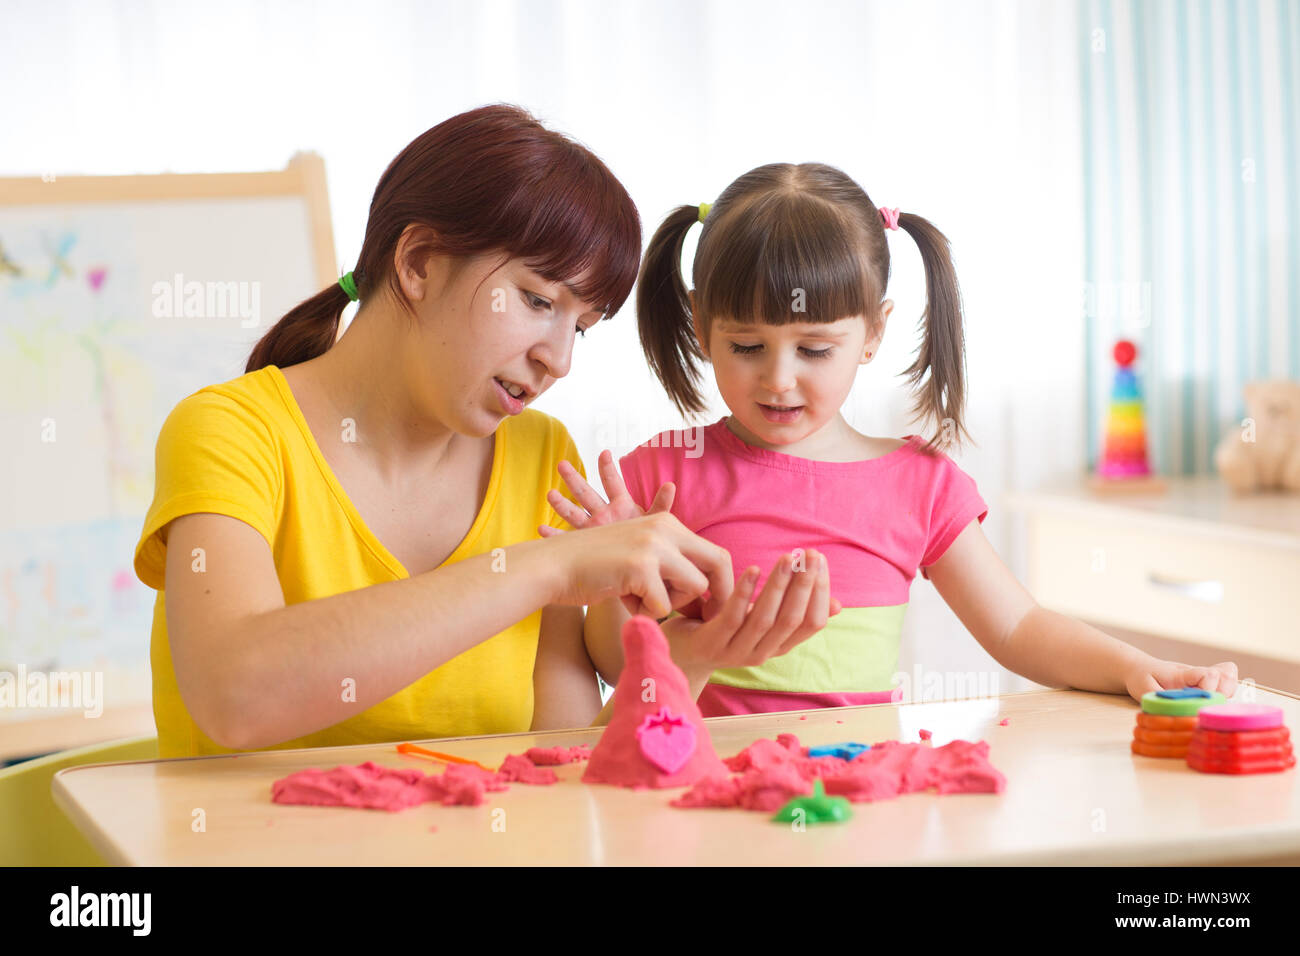 Child girl and mother playing with kinetic sand at home - Stock Image